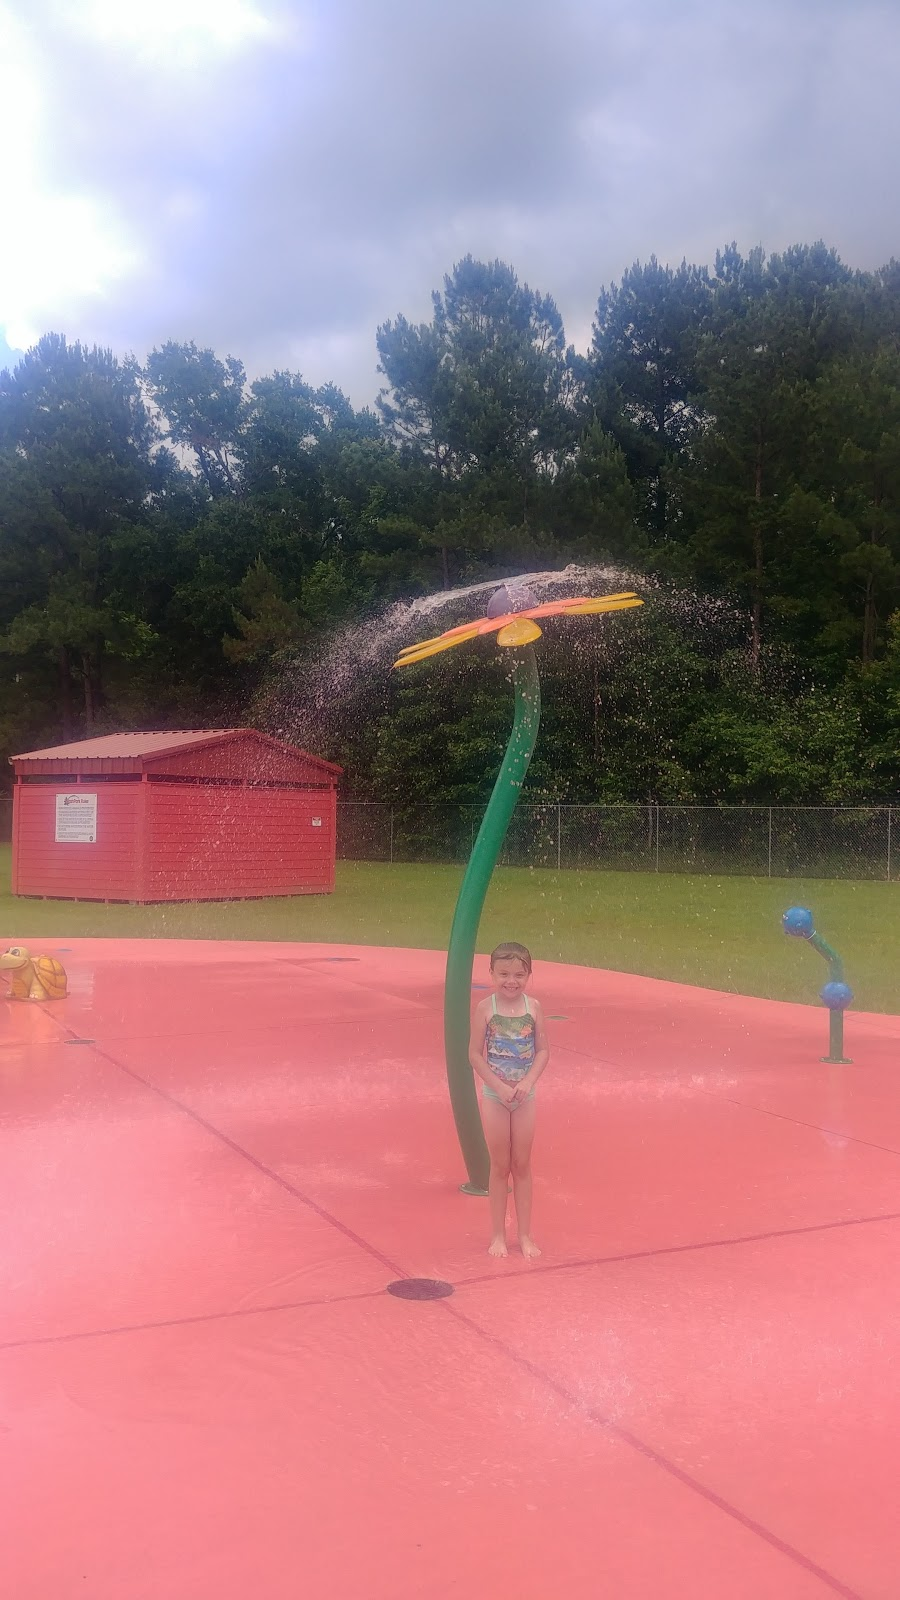 Splendora Splashpad - amusement park  | Photo 3 of 10 | Address: 14917 1st St, Splendora, TX 77372, USA